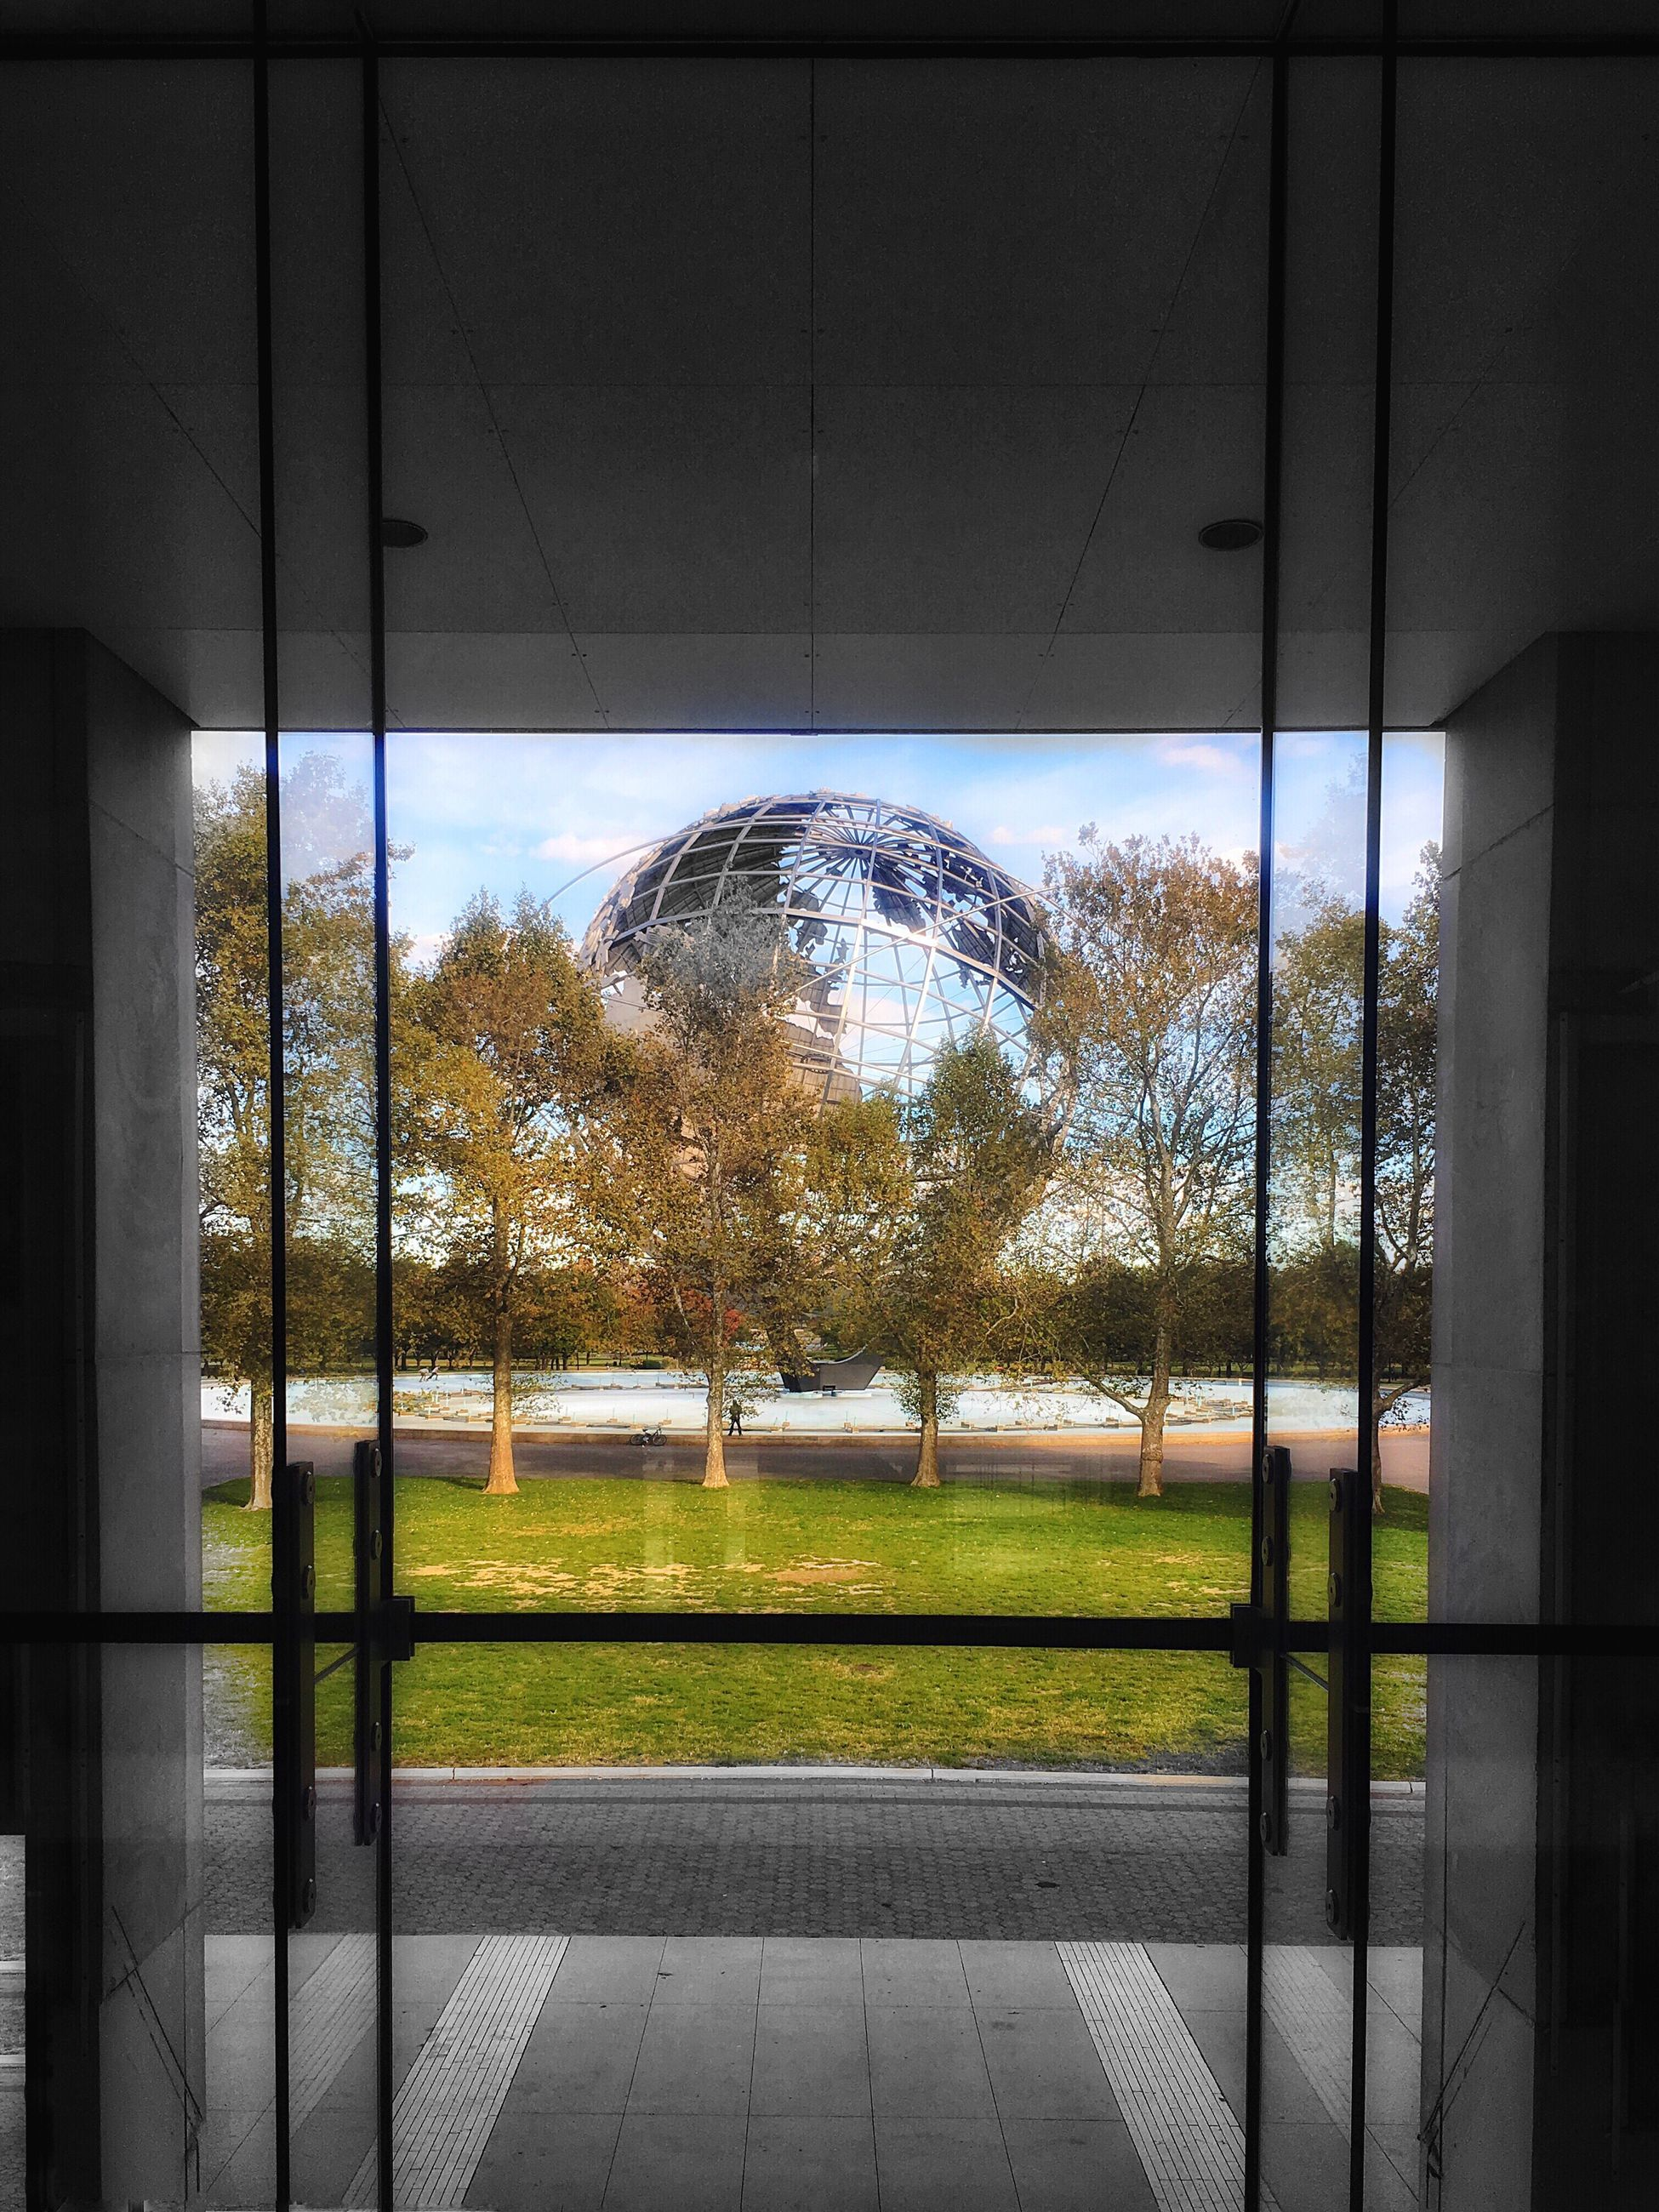 tree, window, soccer field, playing field, soccer, sport, outdoors, no people, architecture, day, sky, nature, built structure, building exterior, grass